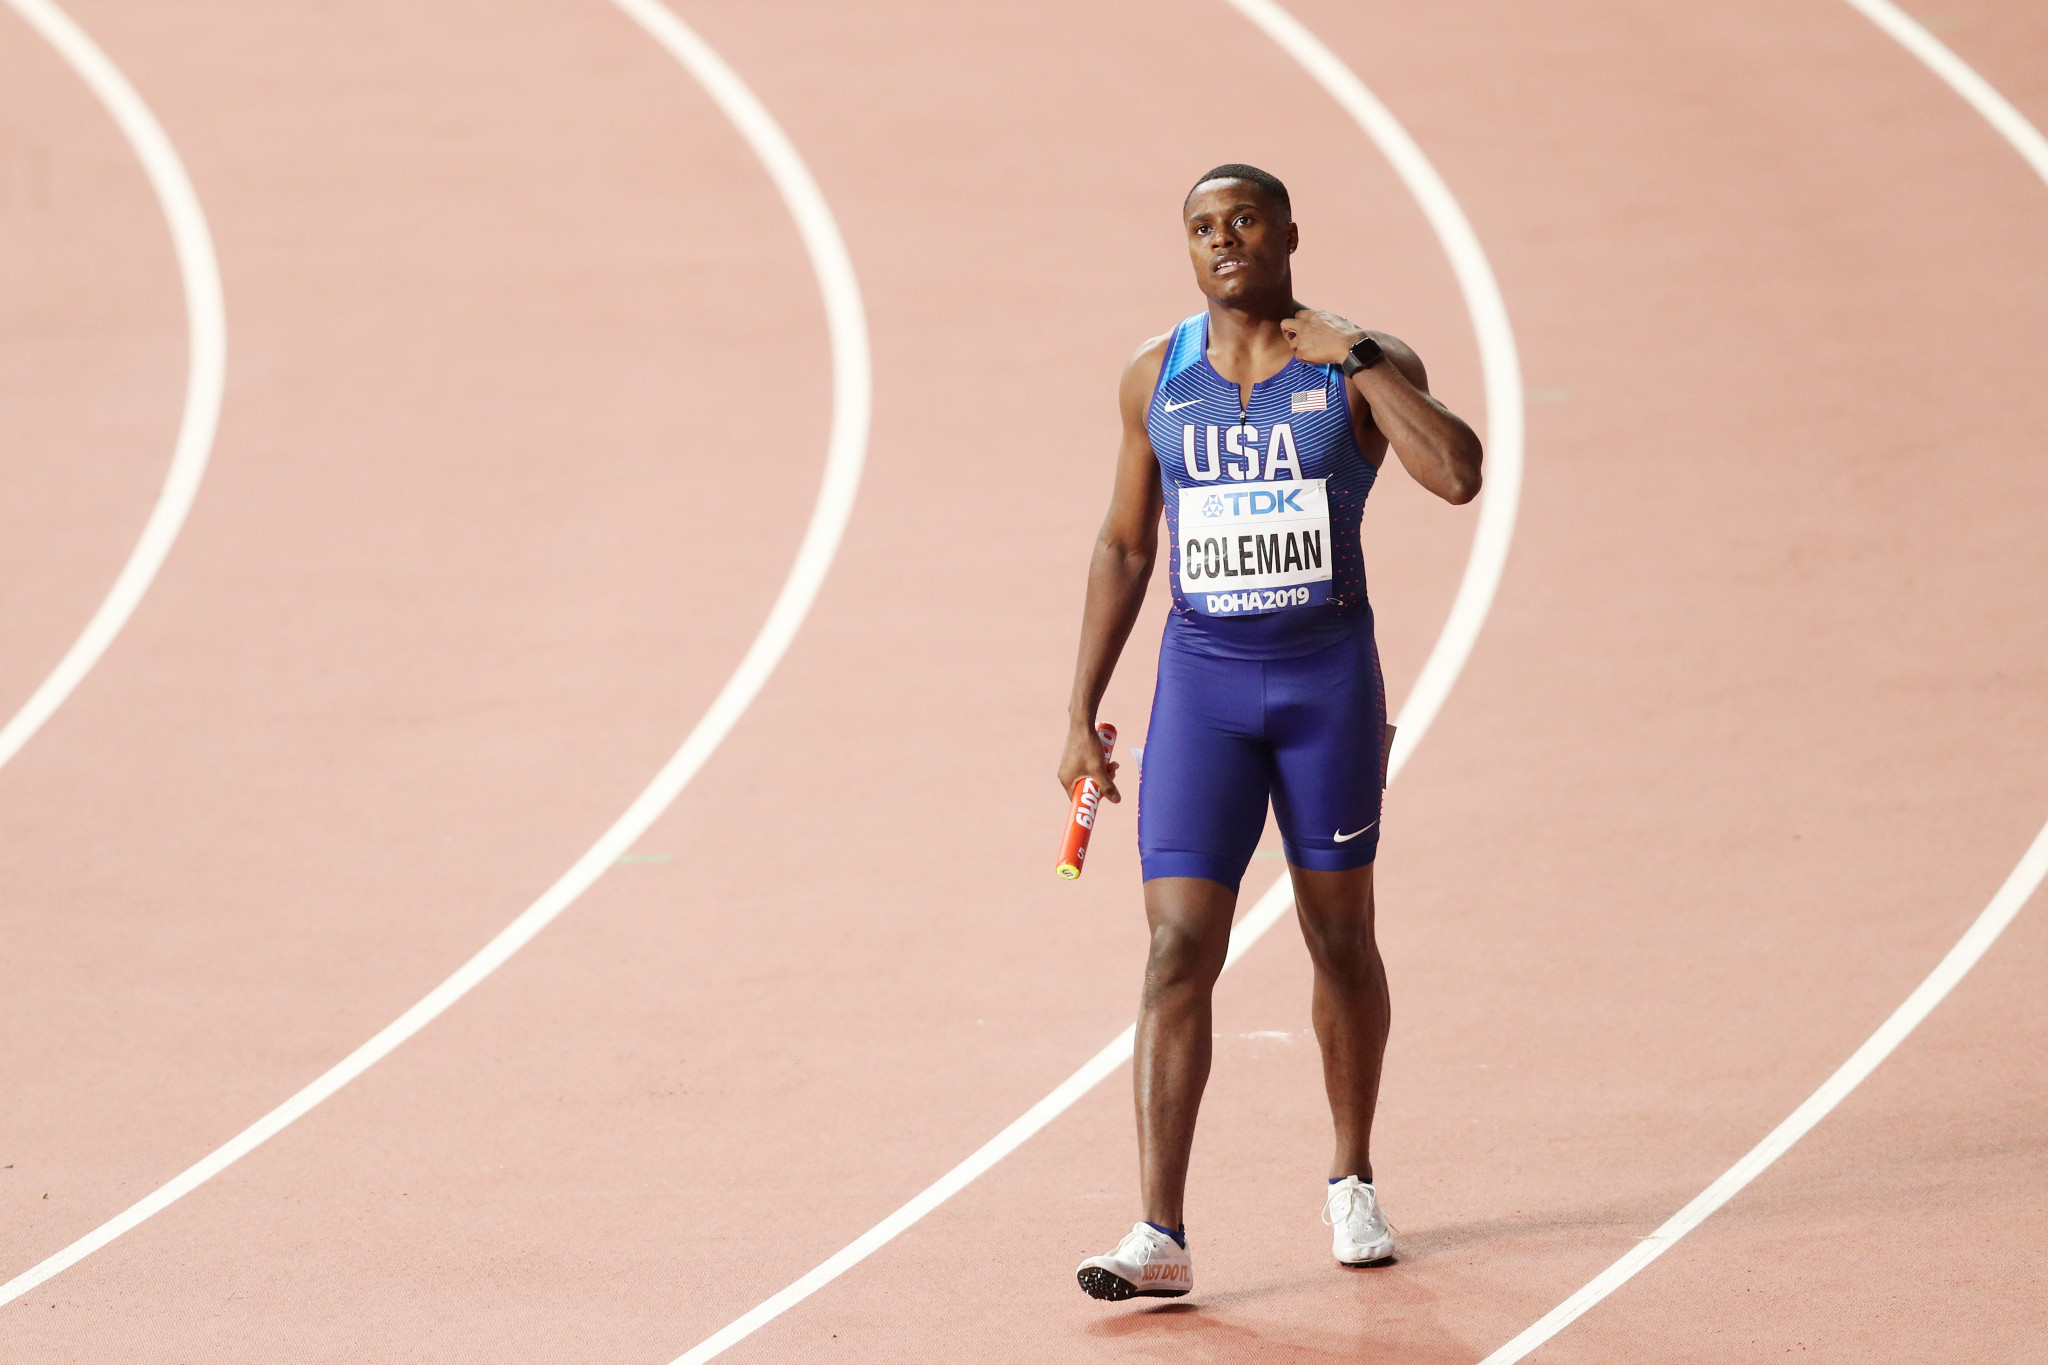 World 100m champion Coleman appeals ban that would rule him out of Tokyo 2020